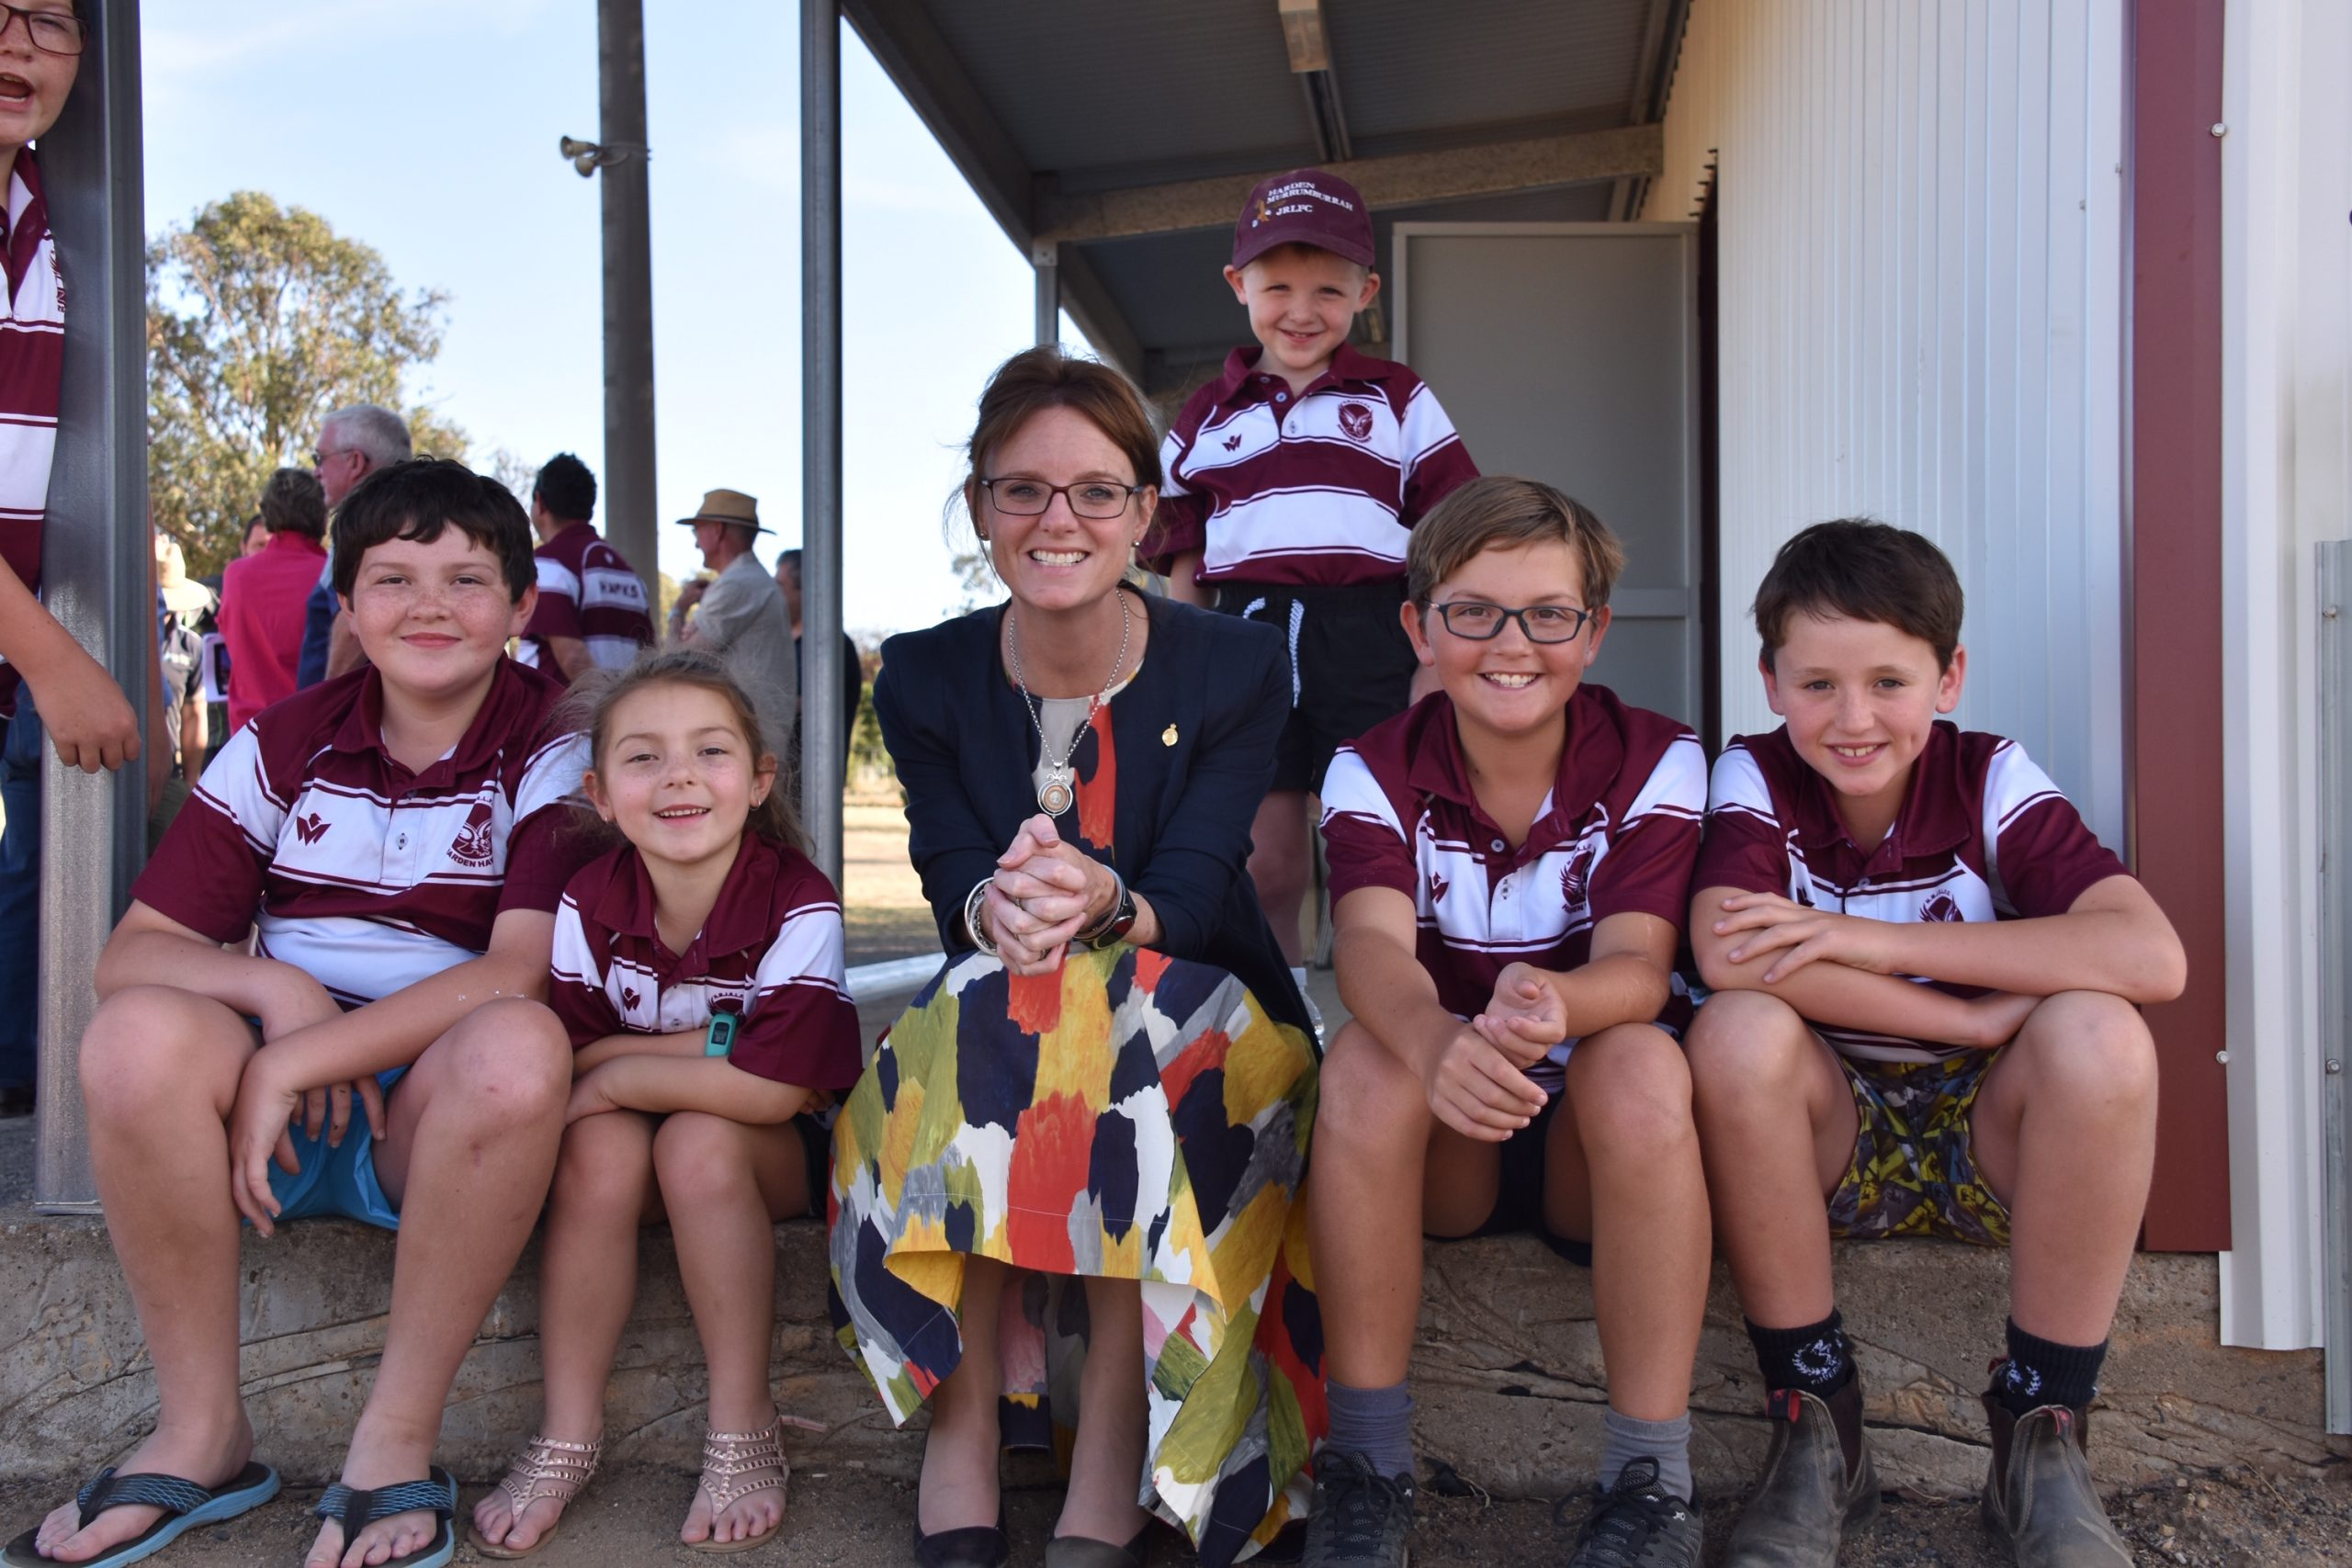 Steph Cooke sits with four players from the junior rugby league club in their uniforms, while another stands behind Steph. They sit on a step and smile at the camera.